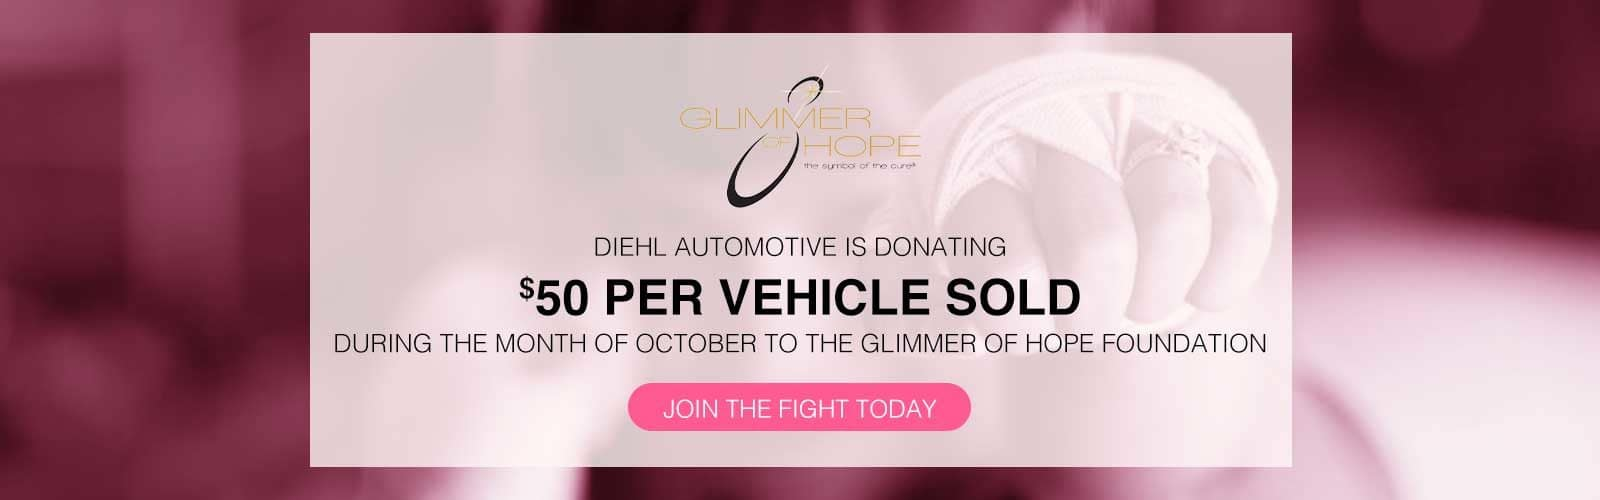 Diehl Volkswagen glimmer of hope breast cancer awareness foundation donate vw lease special buy now butler pa